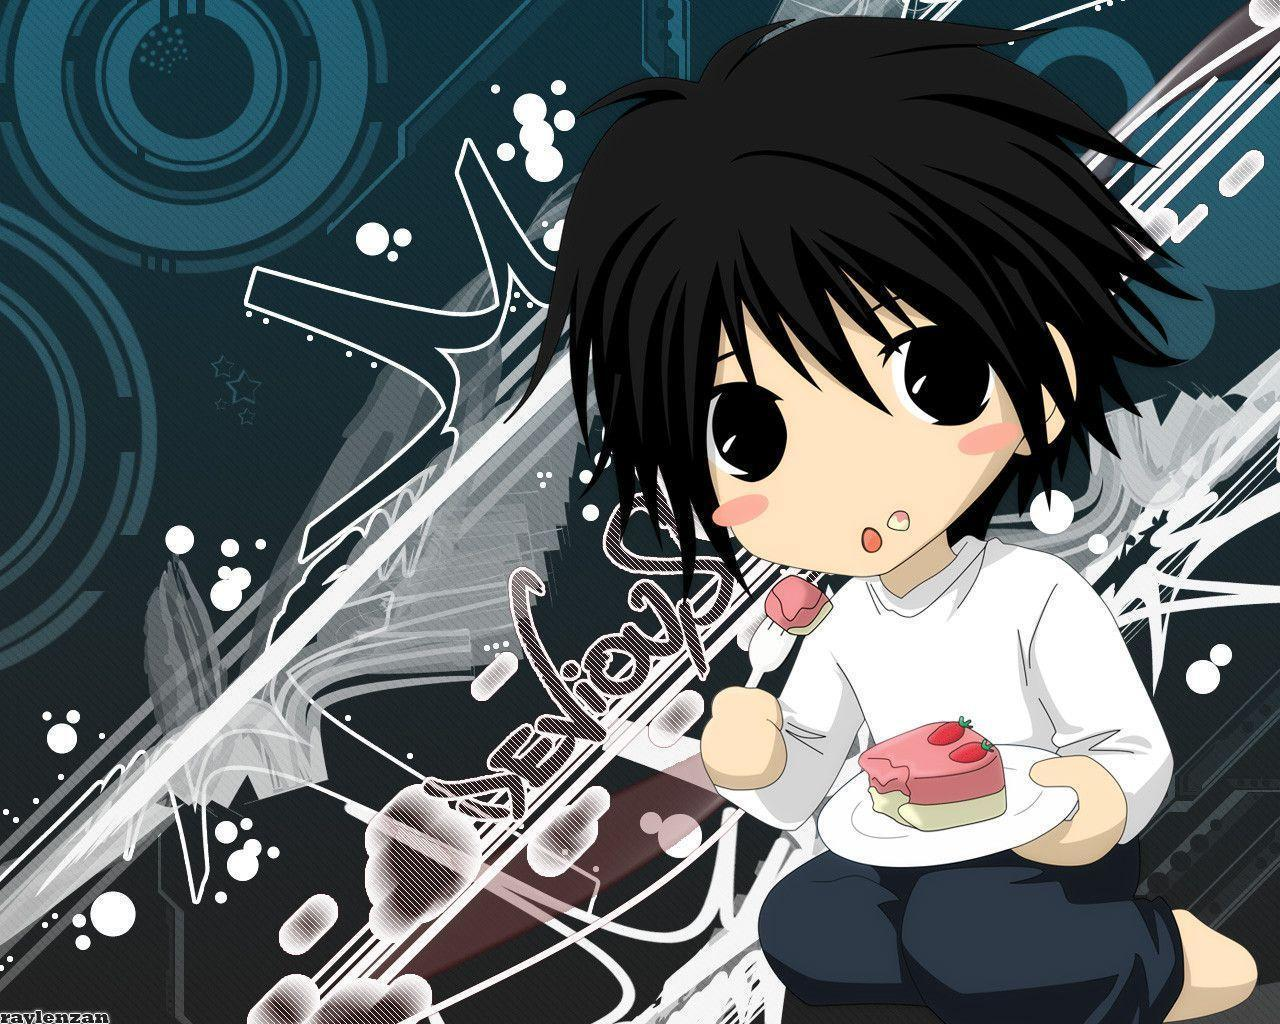 L Death Note Wallpapers High Quality | Download Free |L Death Note